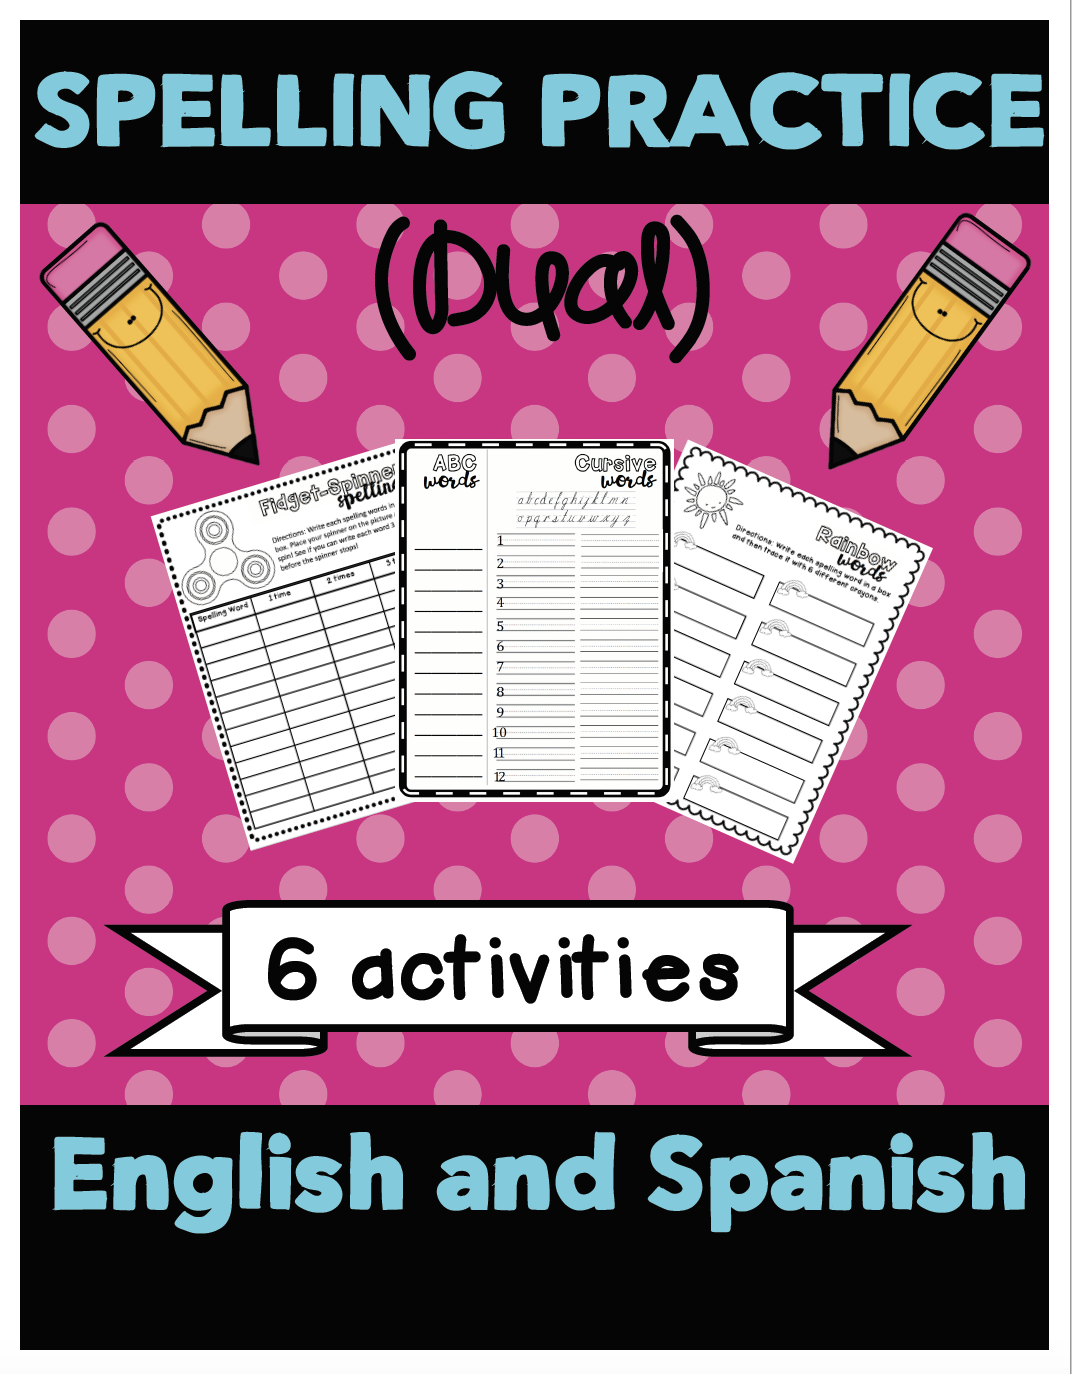 Spelling Word Practice Dual English Spanish With Images